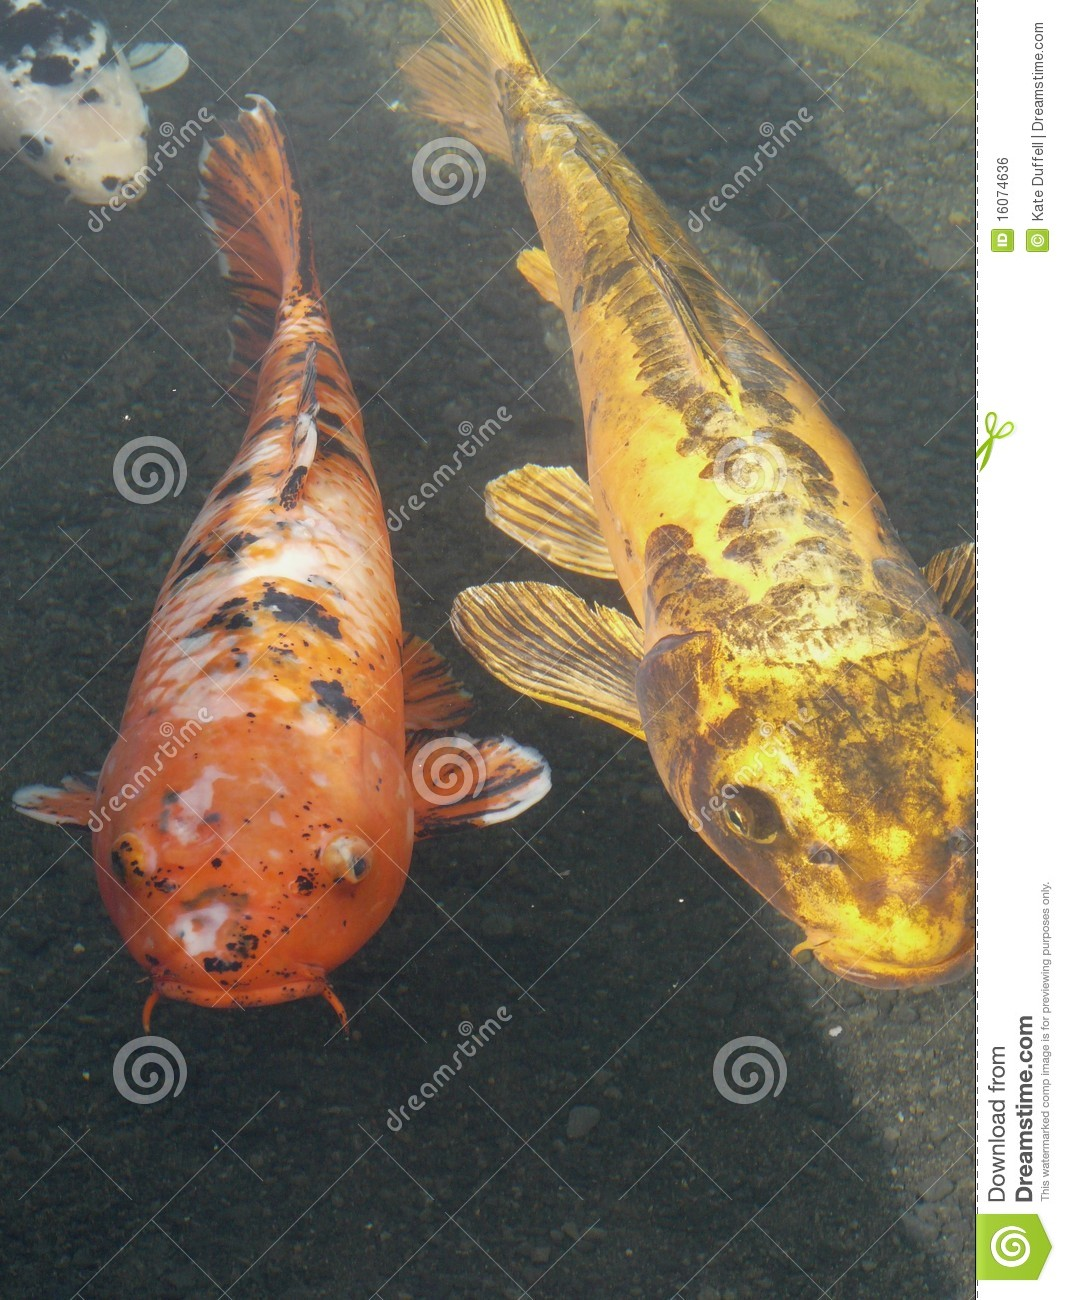 ornamental koi carp fish royalty free stock image image